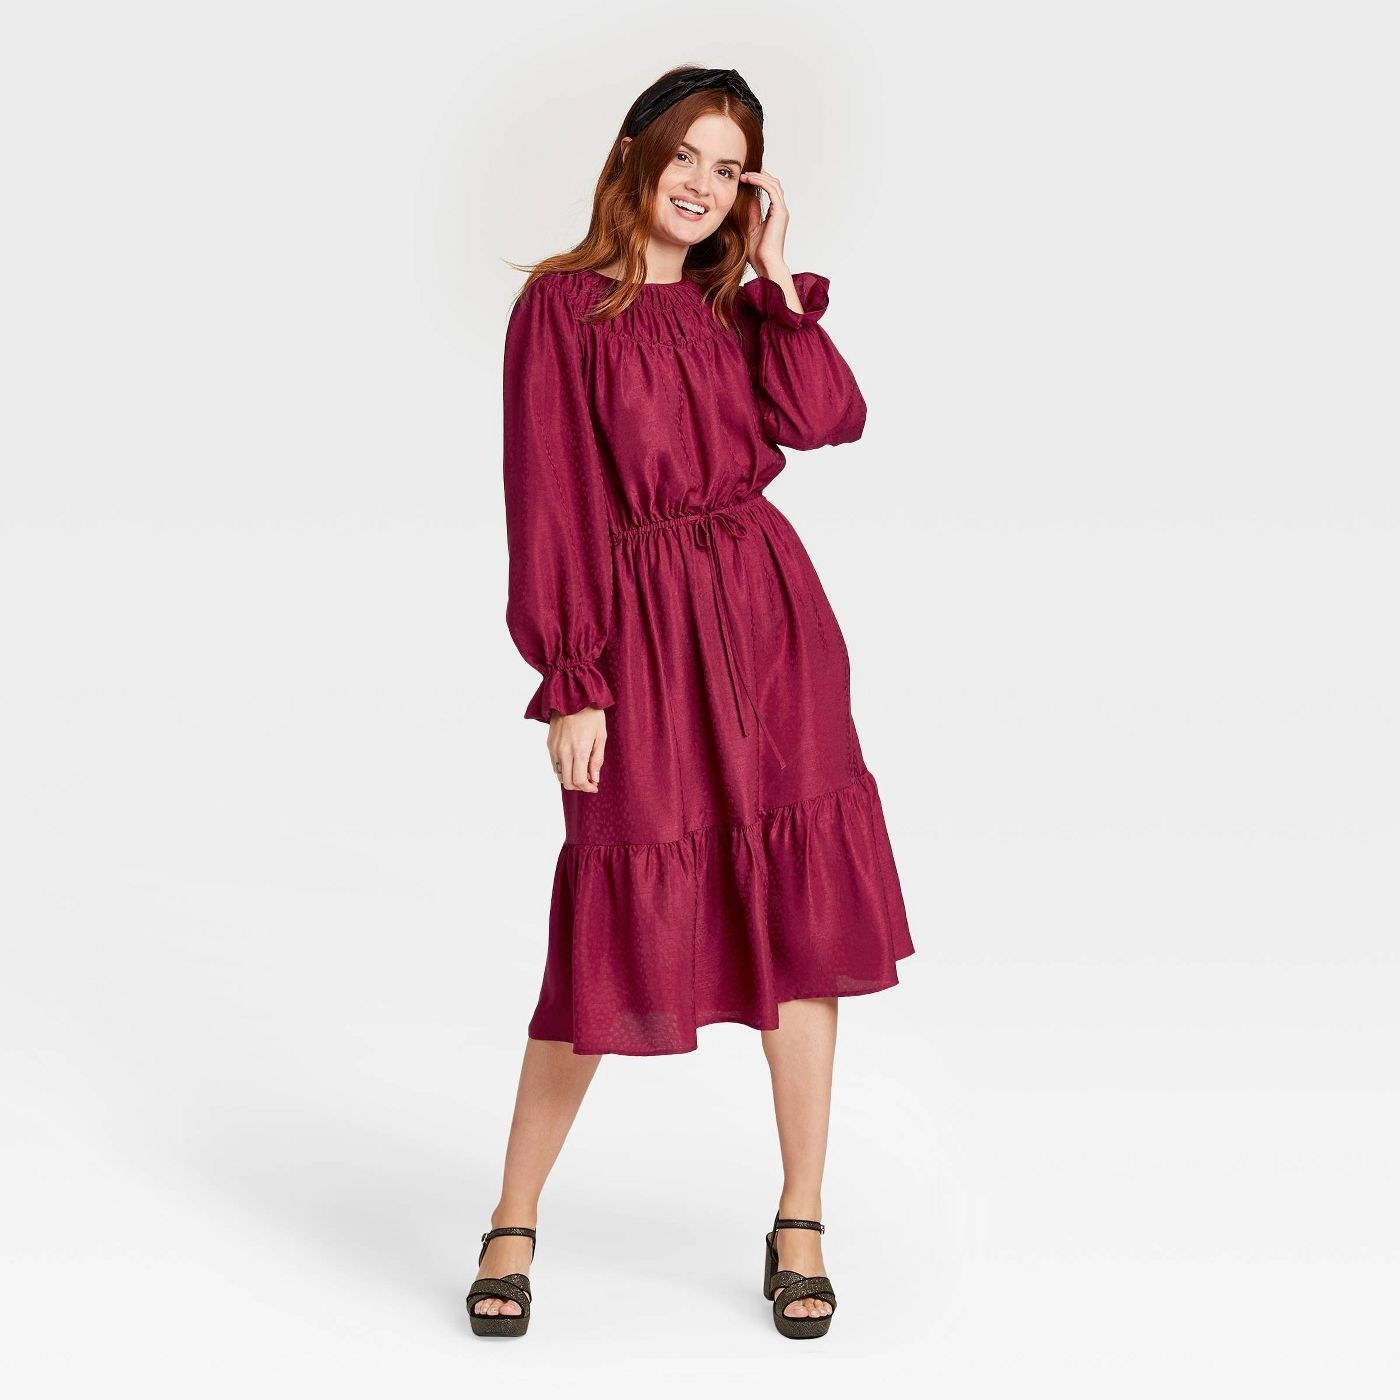 Model wearing magenta midi dress with cinched waist